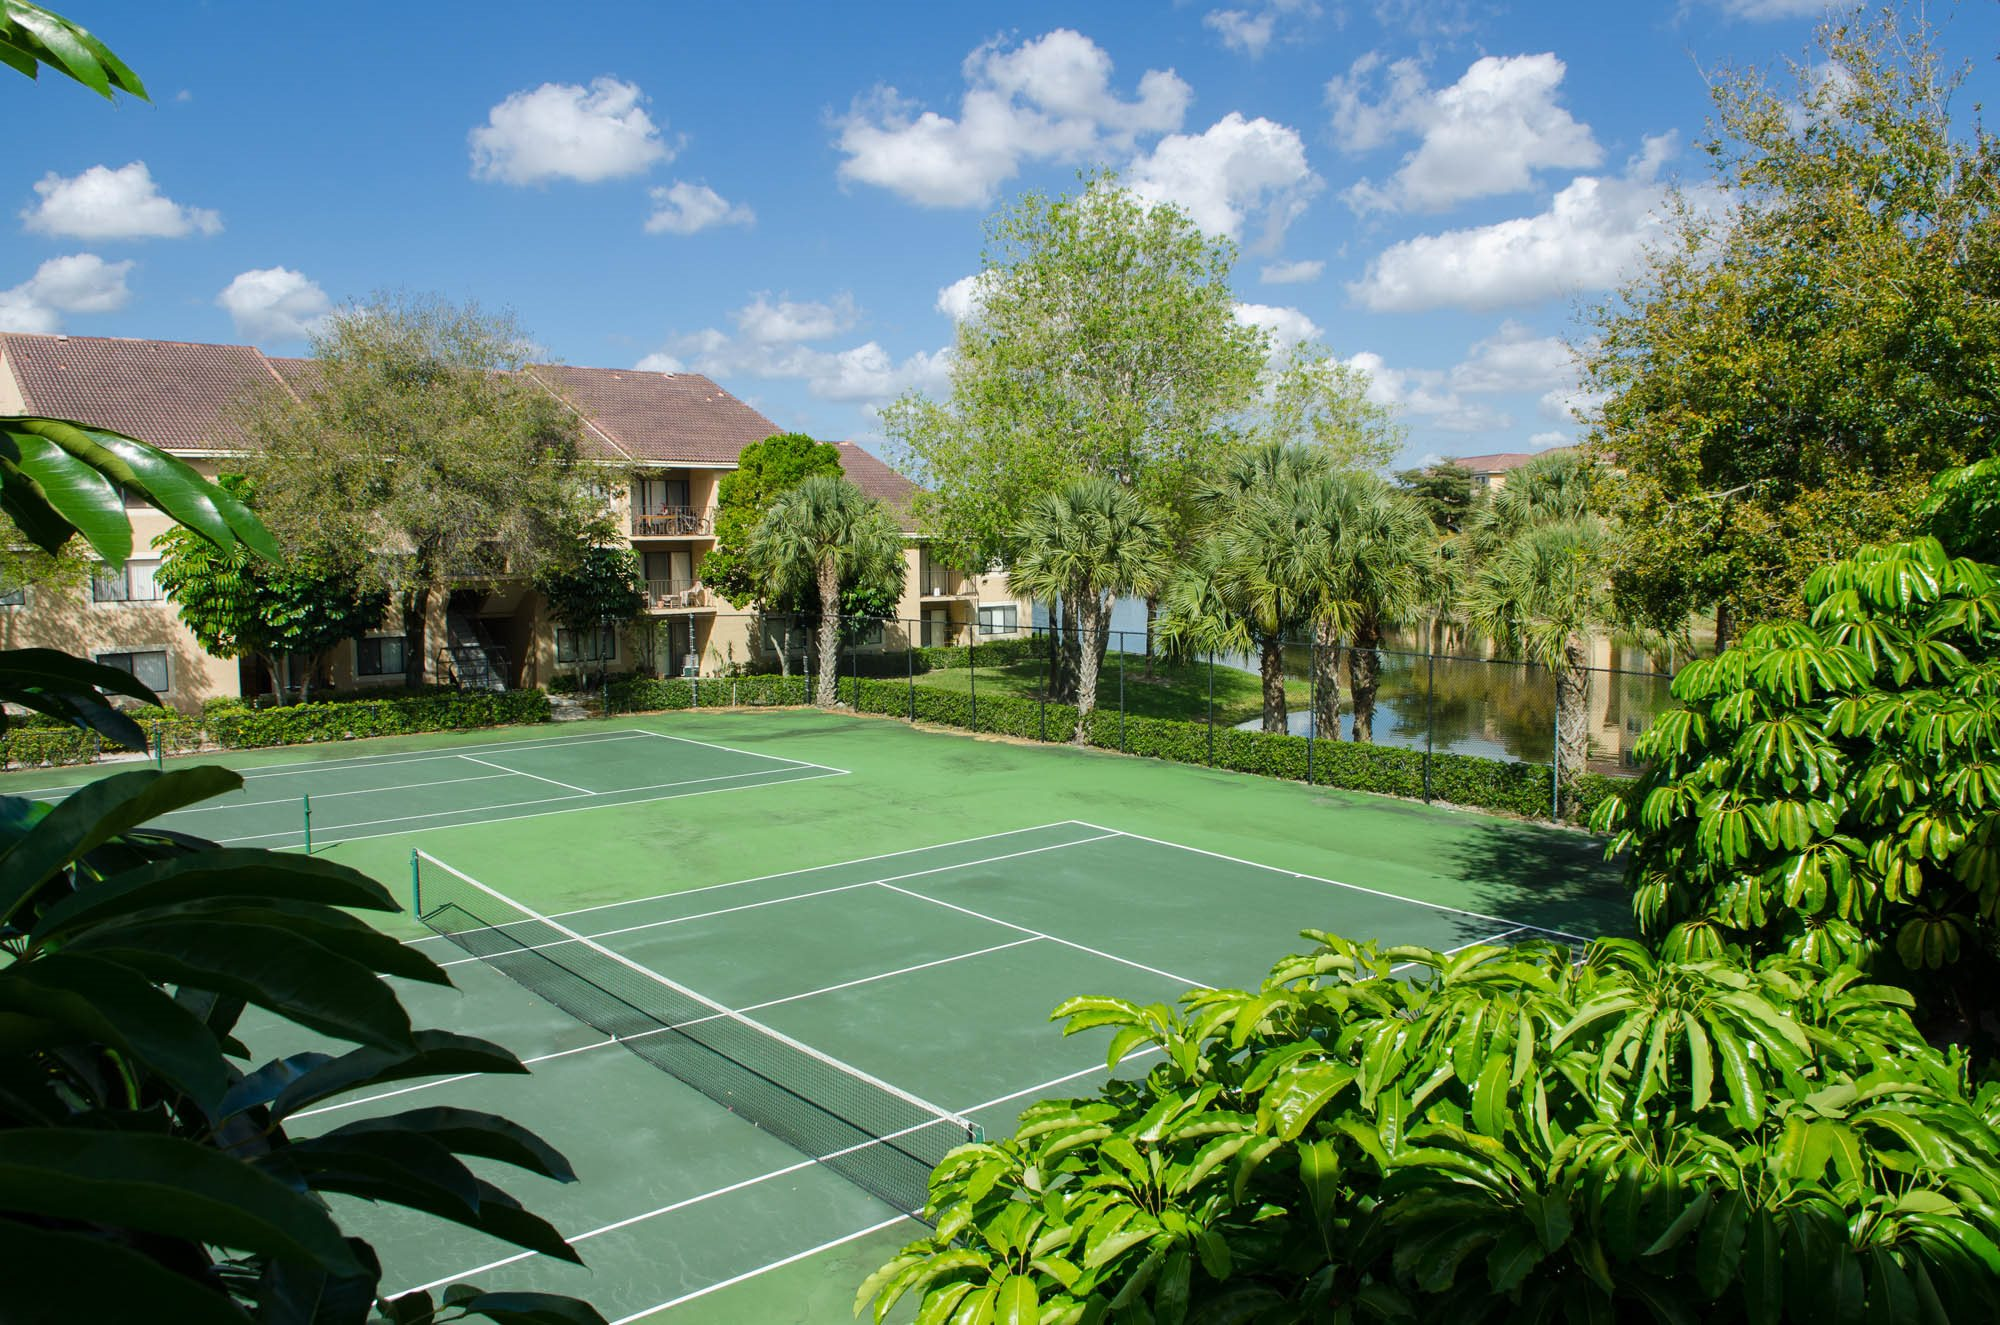 tennis courts and exterior of building